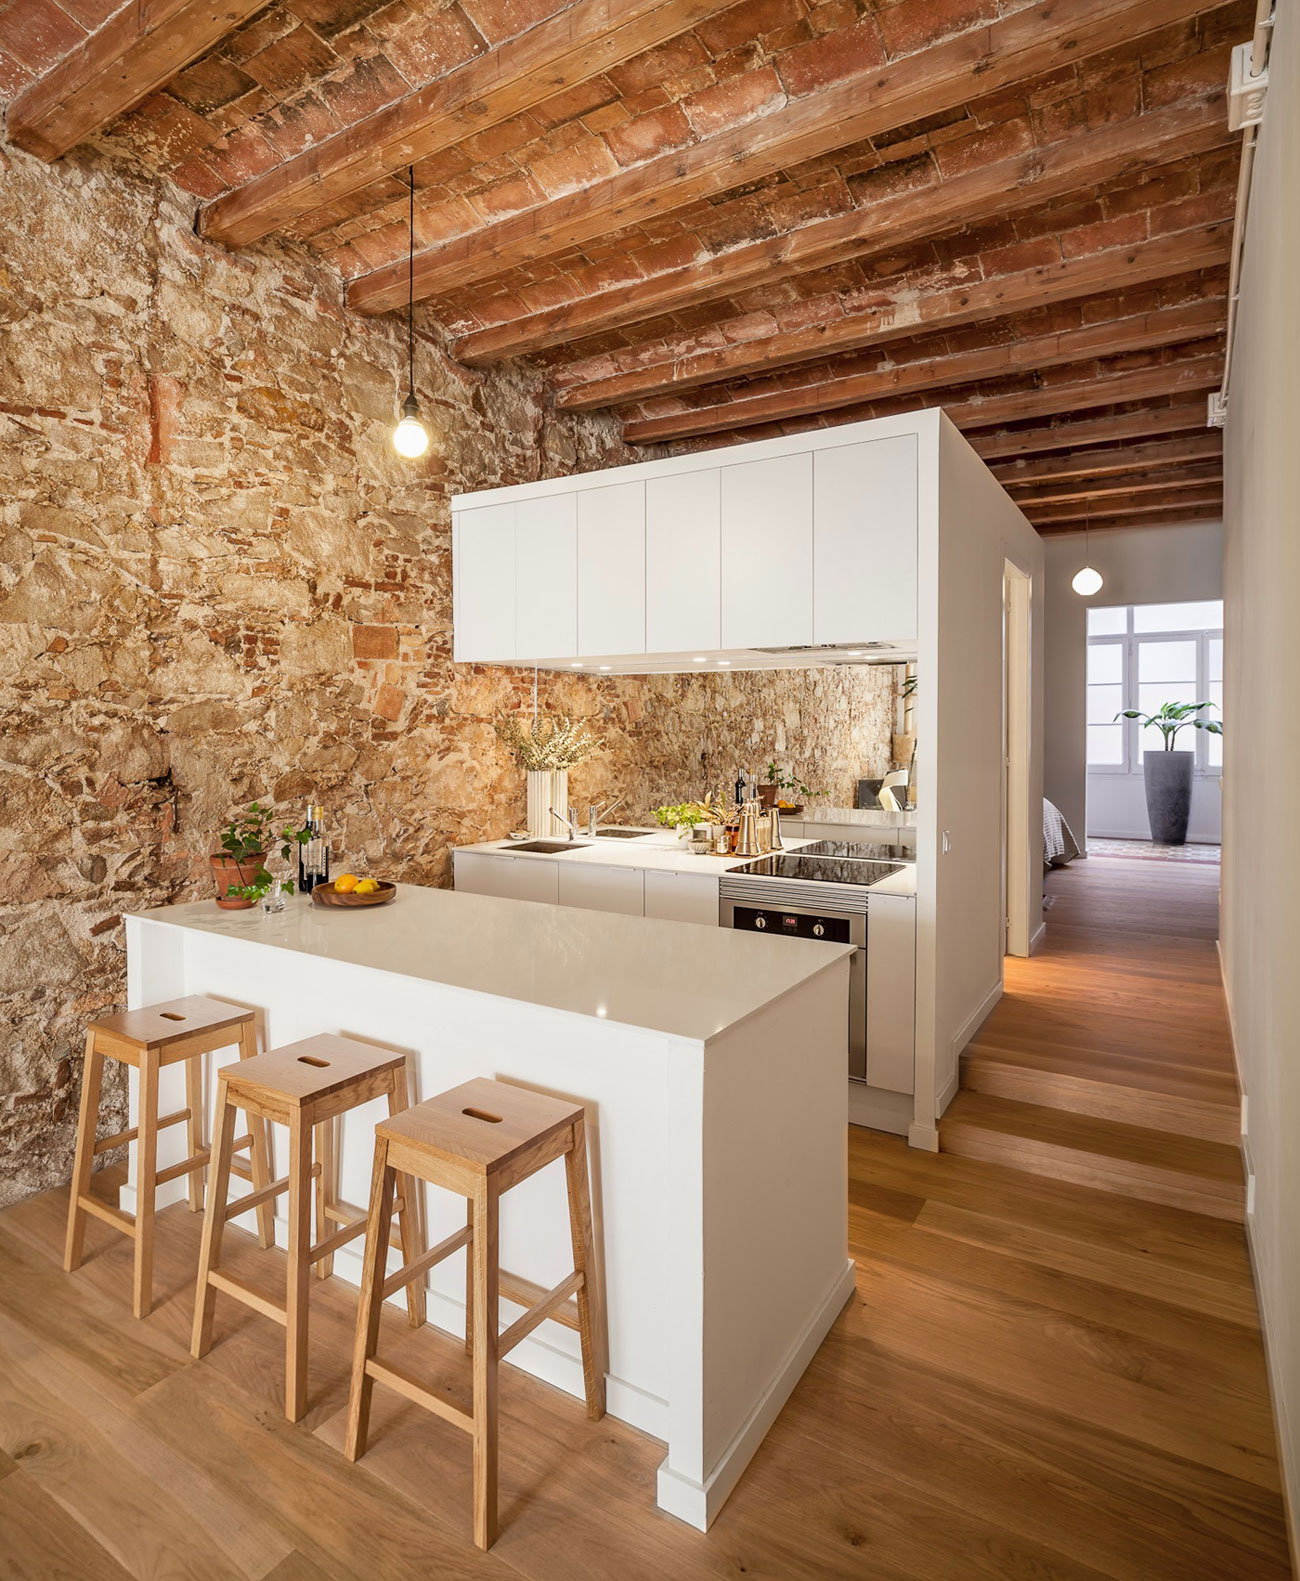 Renovation-Apartment-in-Les-Corts-kitchen-island